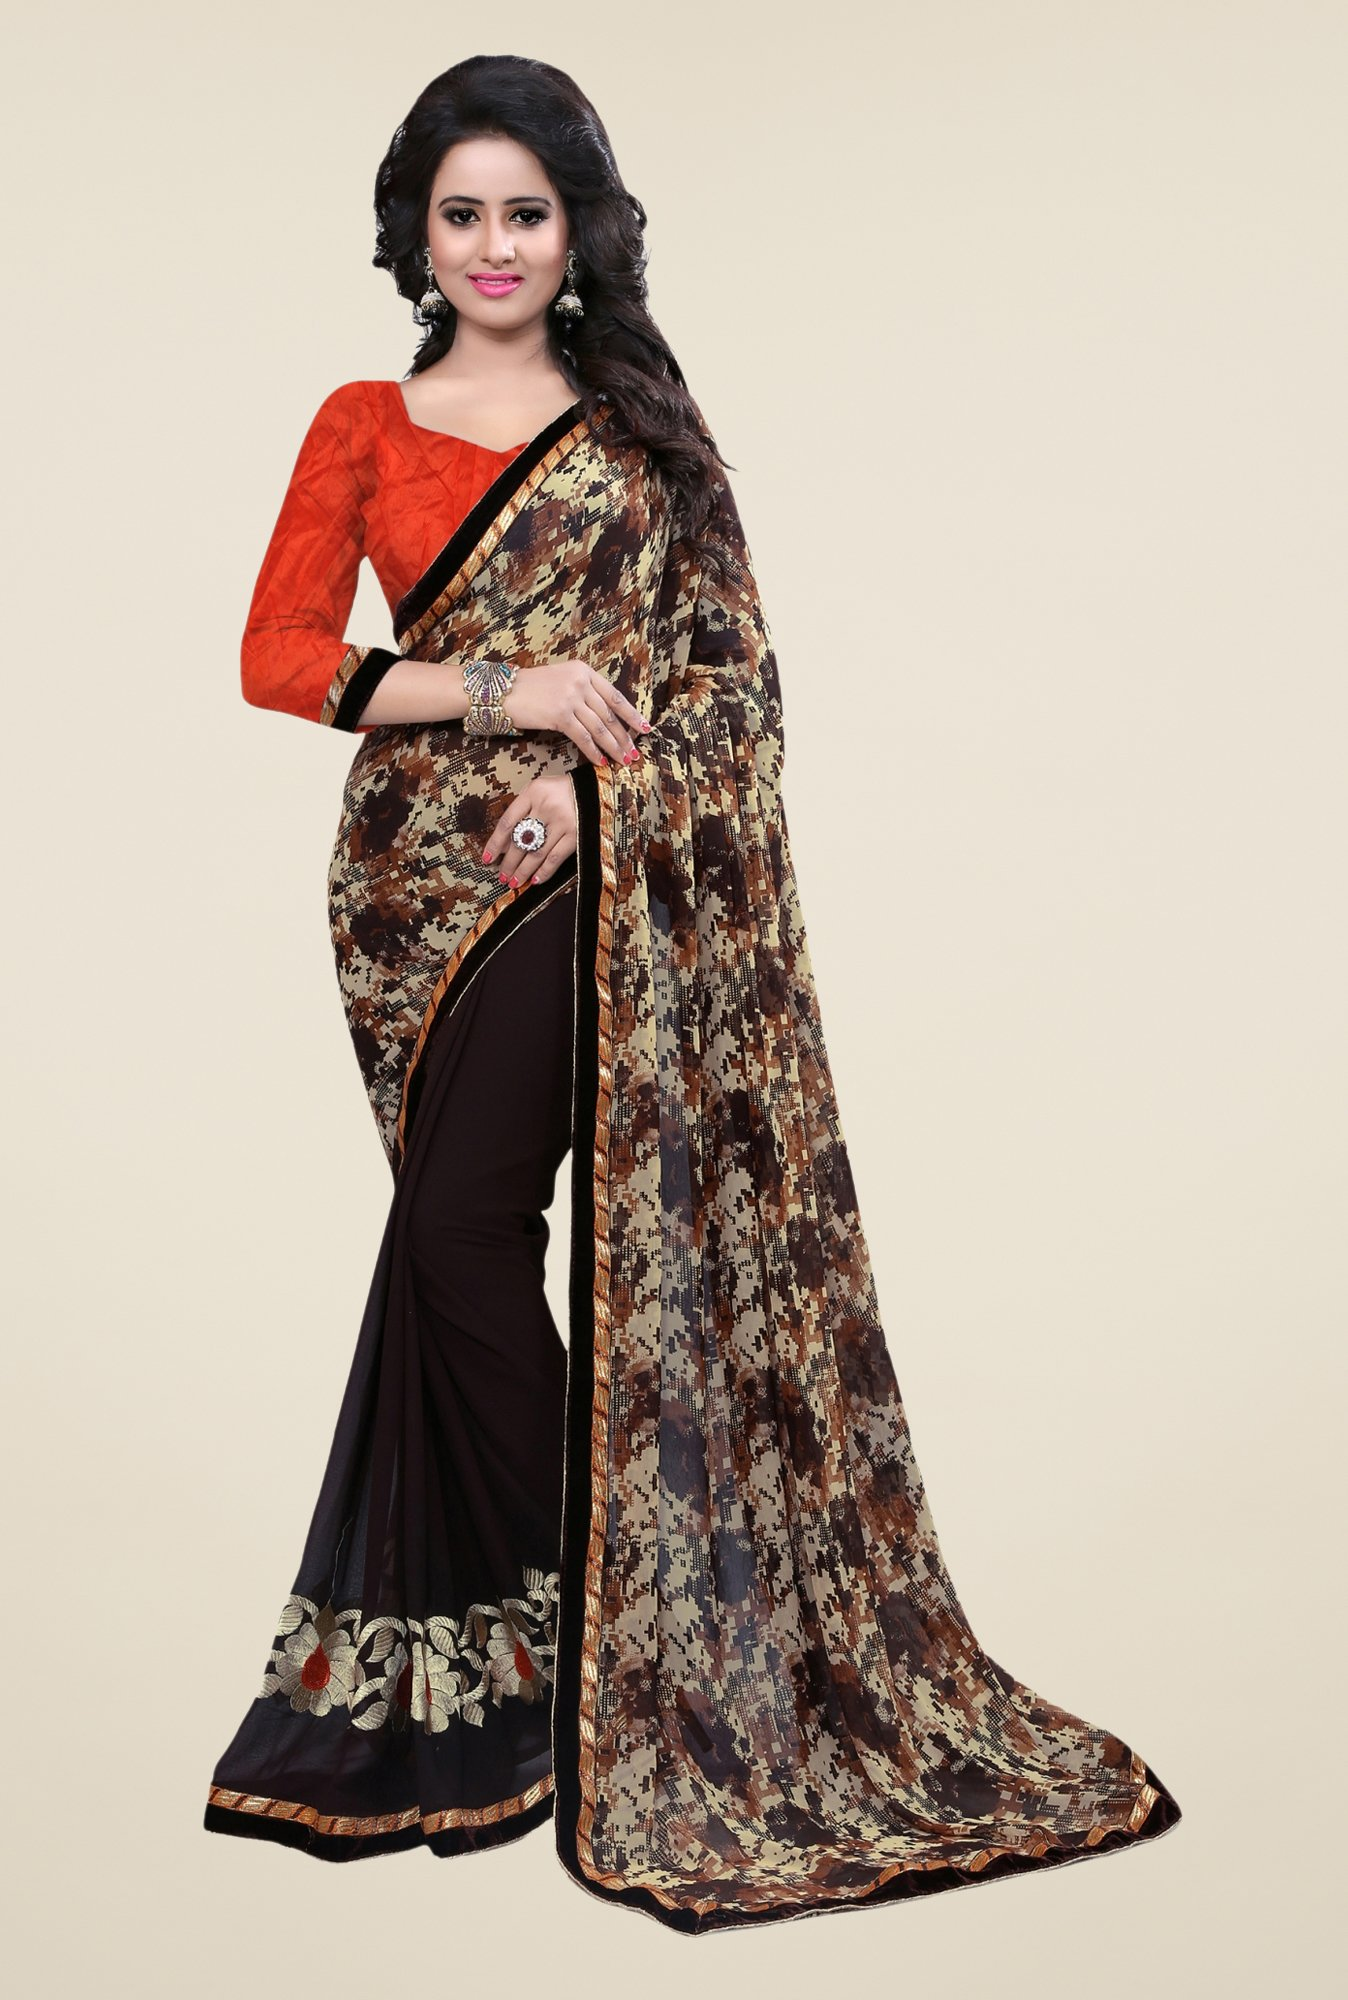 Triveni Brown Printed Dry Clean Saree